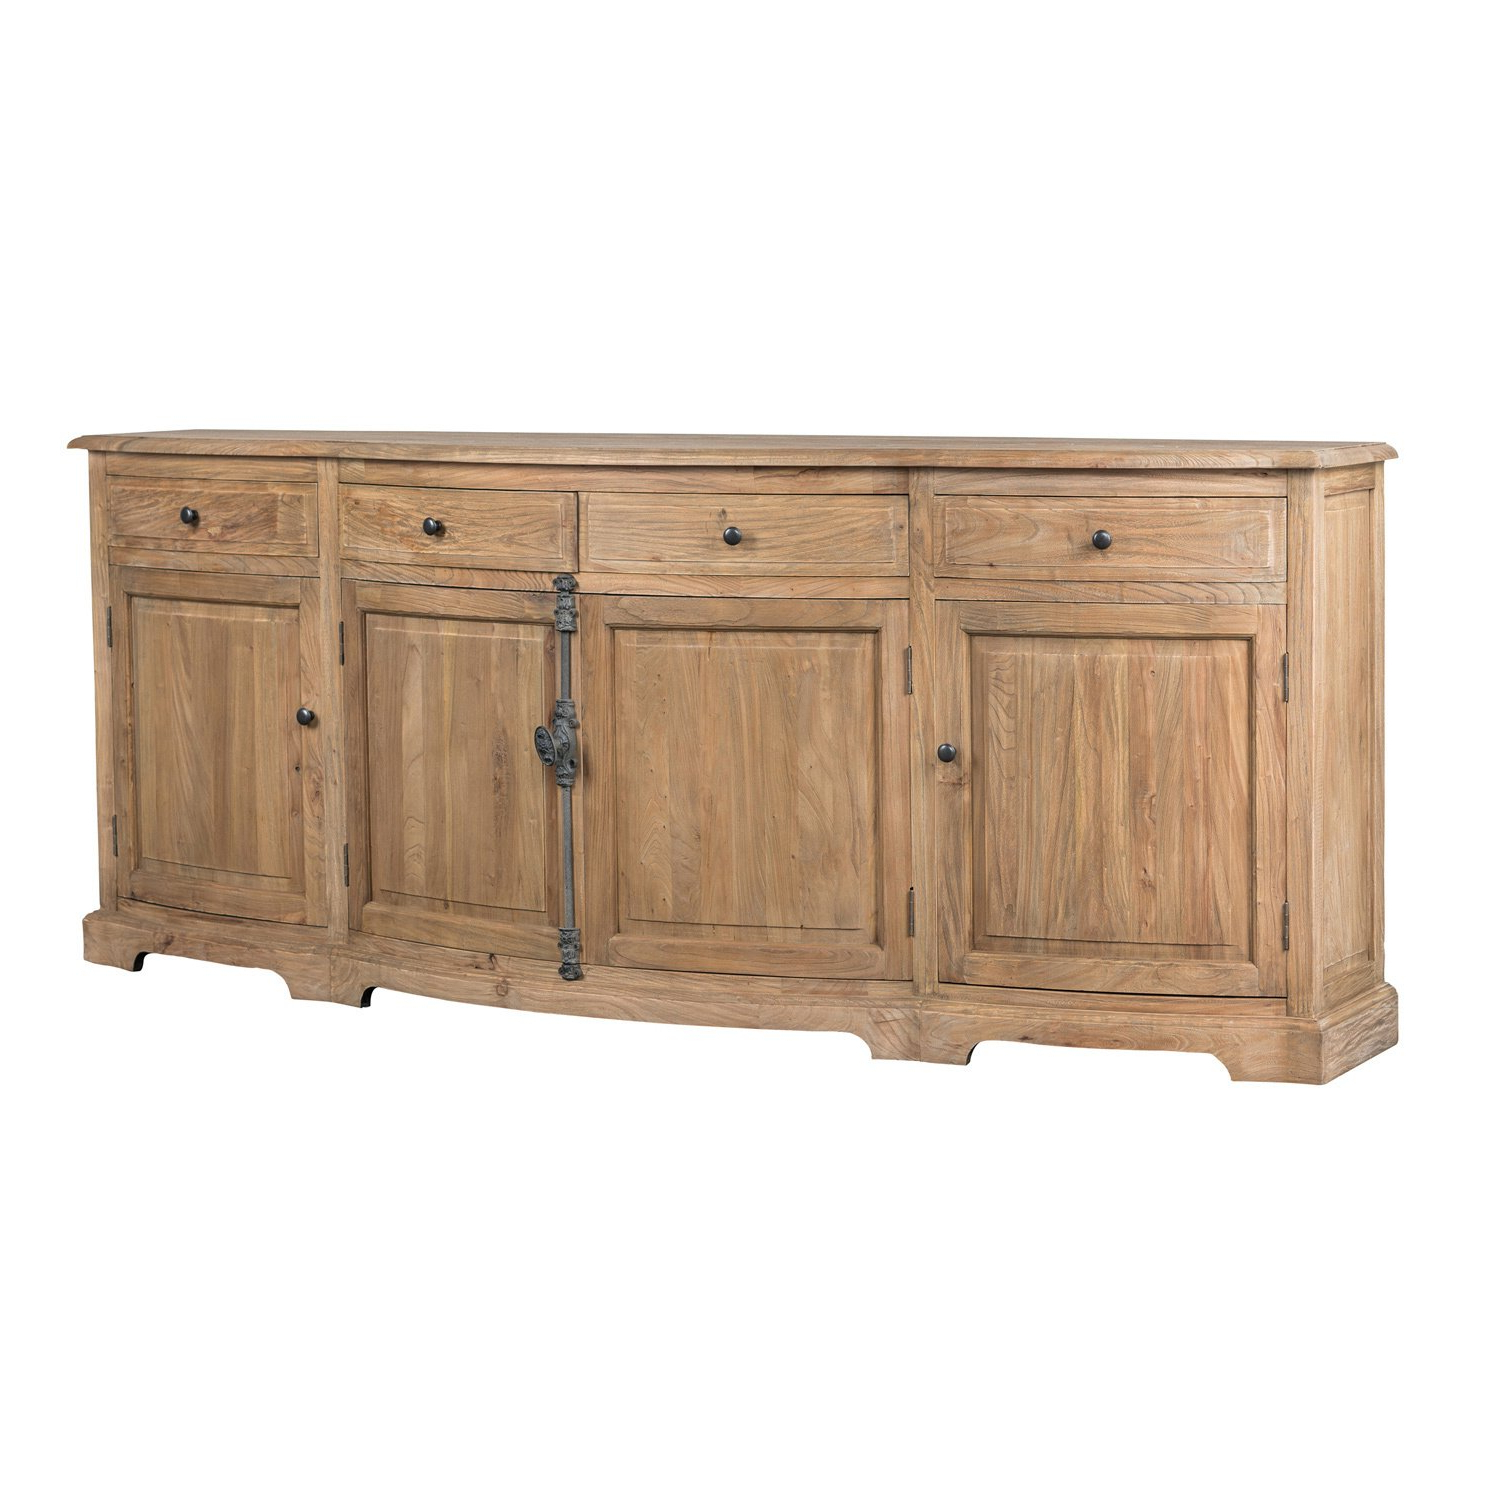 Shop Benjamin Reclaimed Wood Natural 87 Inch Sideboardkosas Home With Fashionable Natural Oak Wood 78 Inch Sideboards (View 17 of 20)